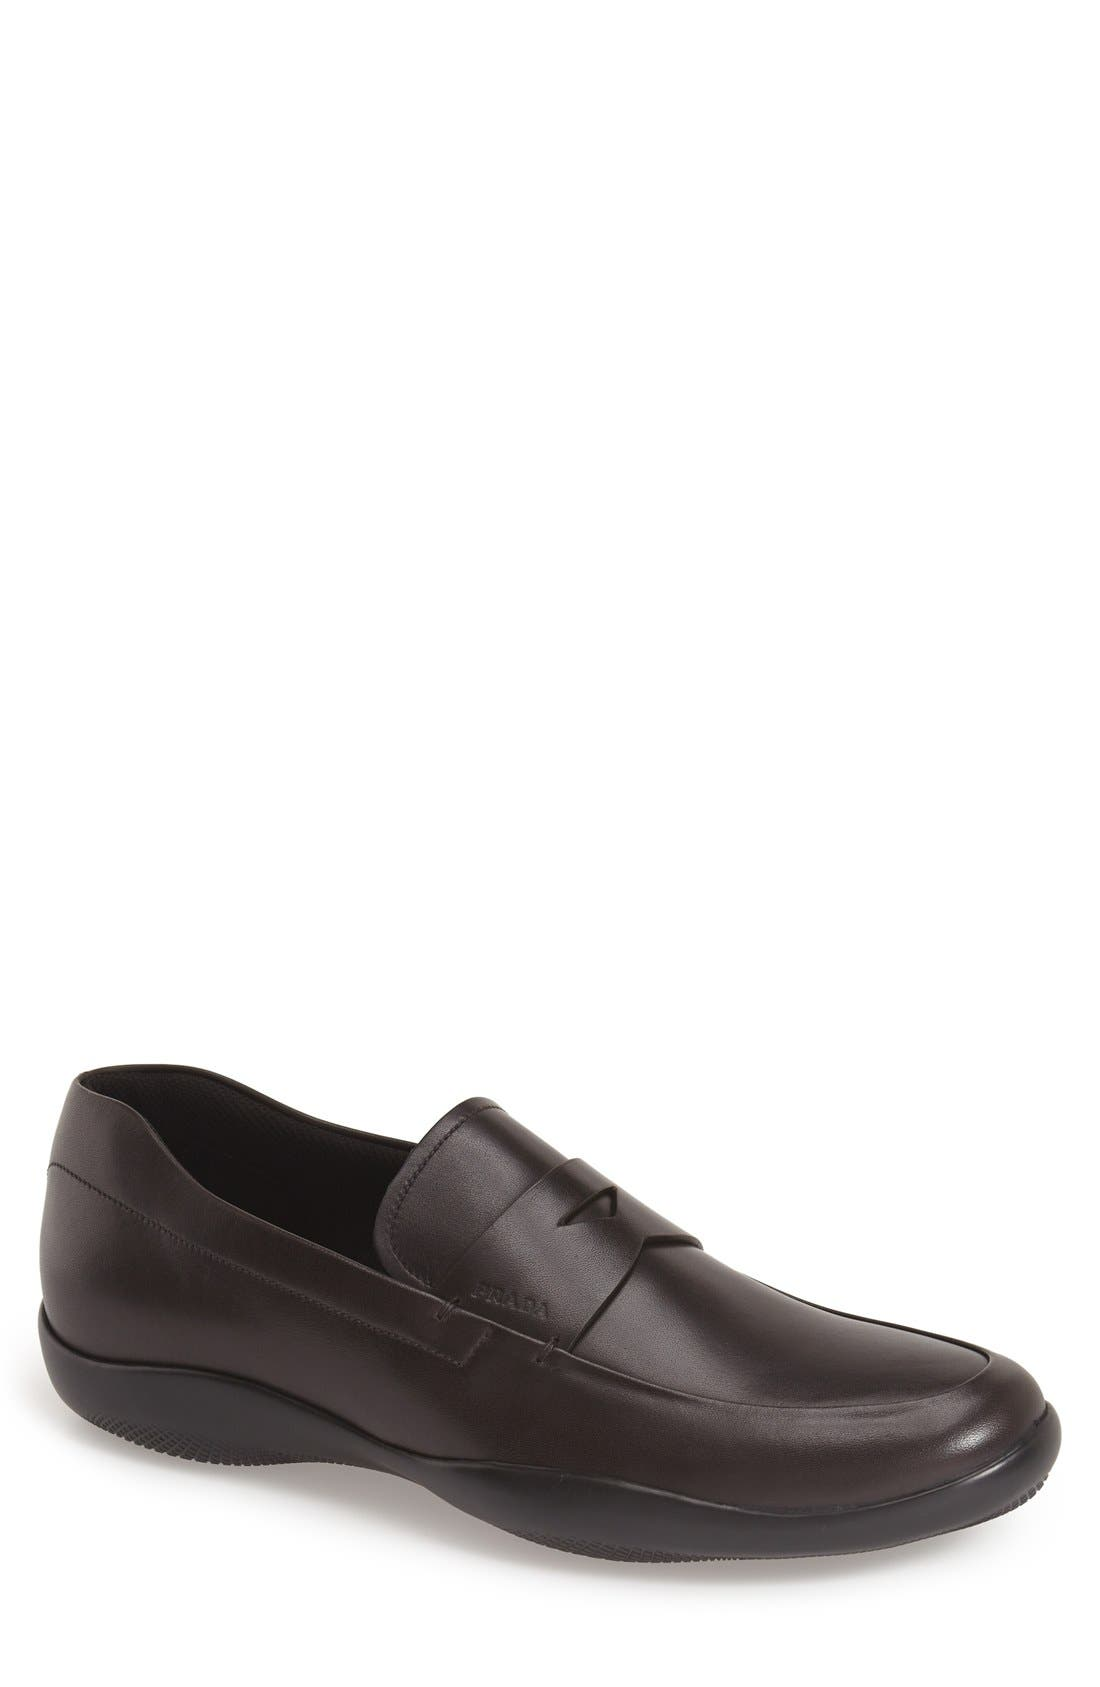 Prada Linea Rossa New Toblak Penny Loafer (Men)